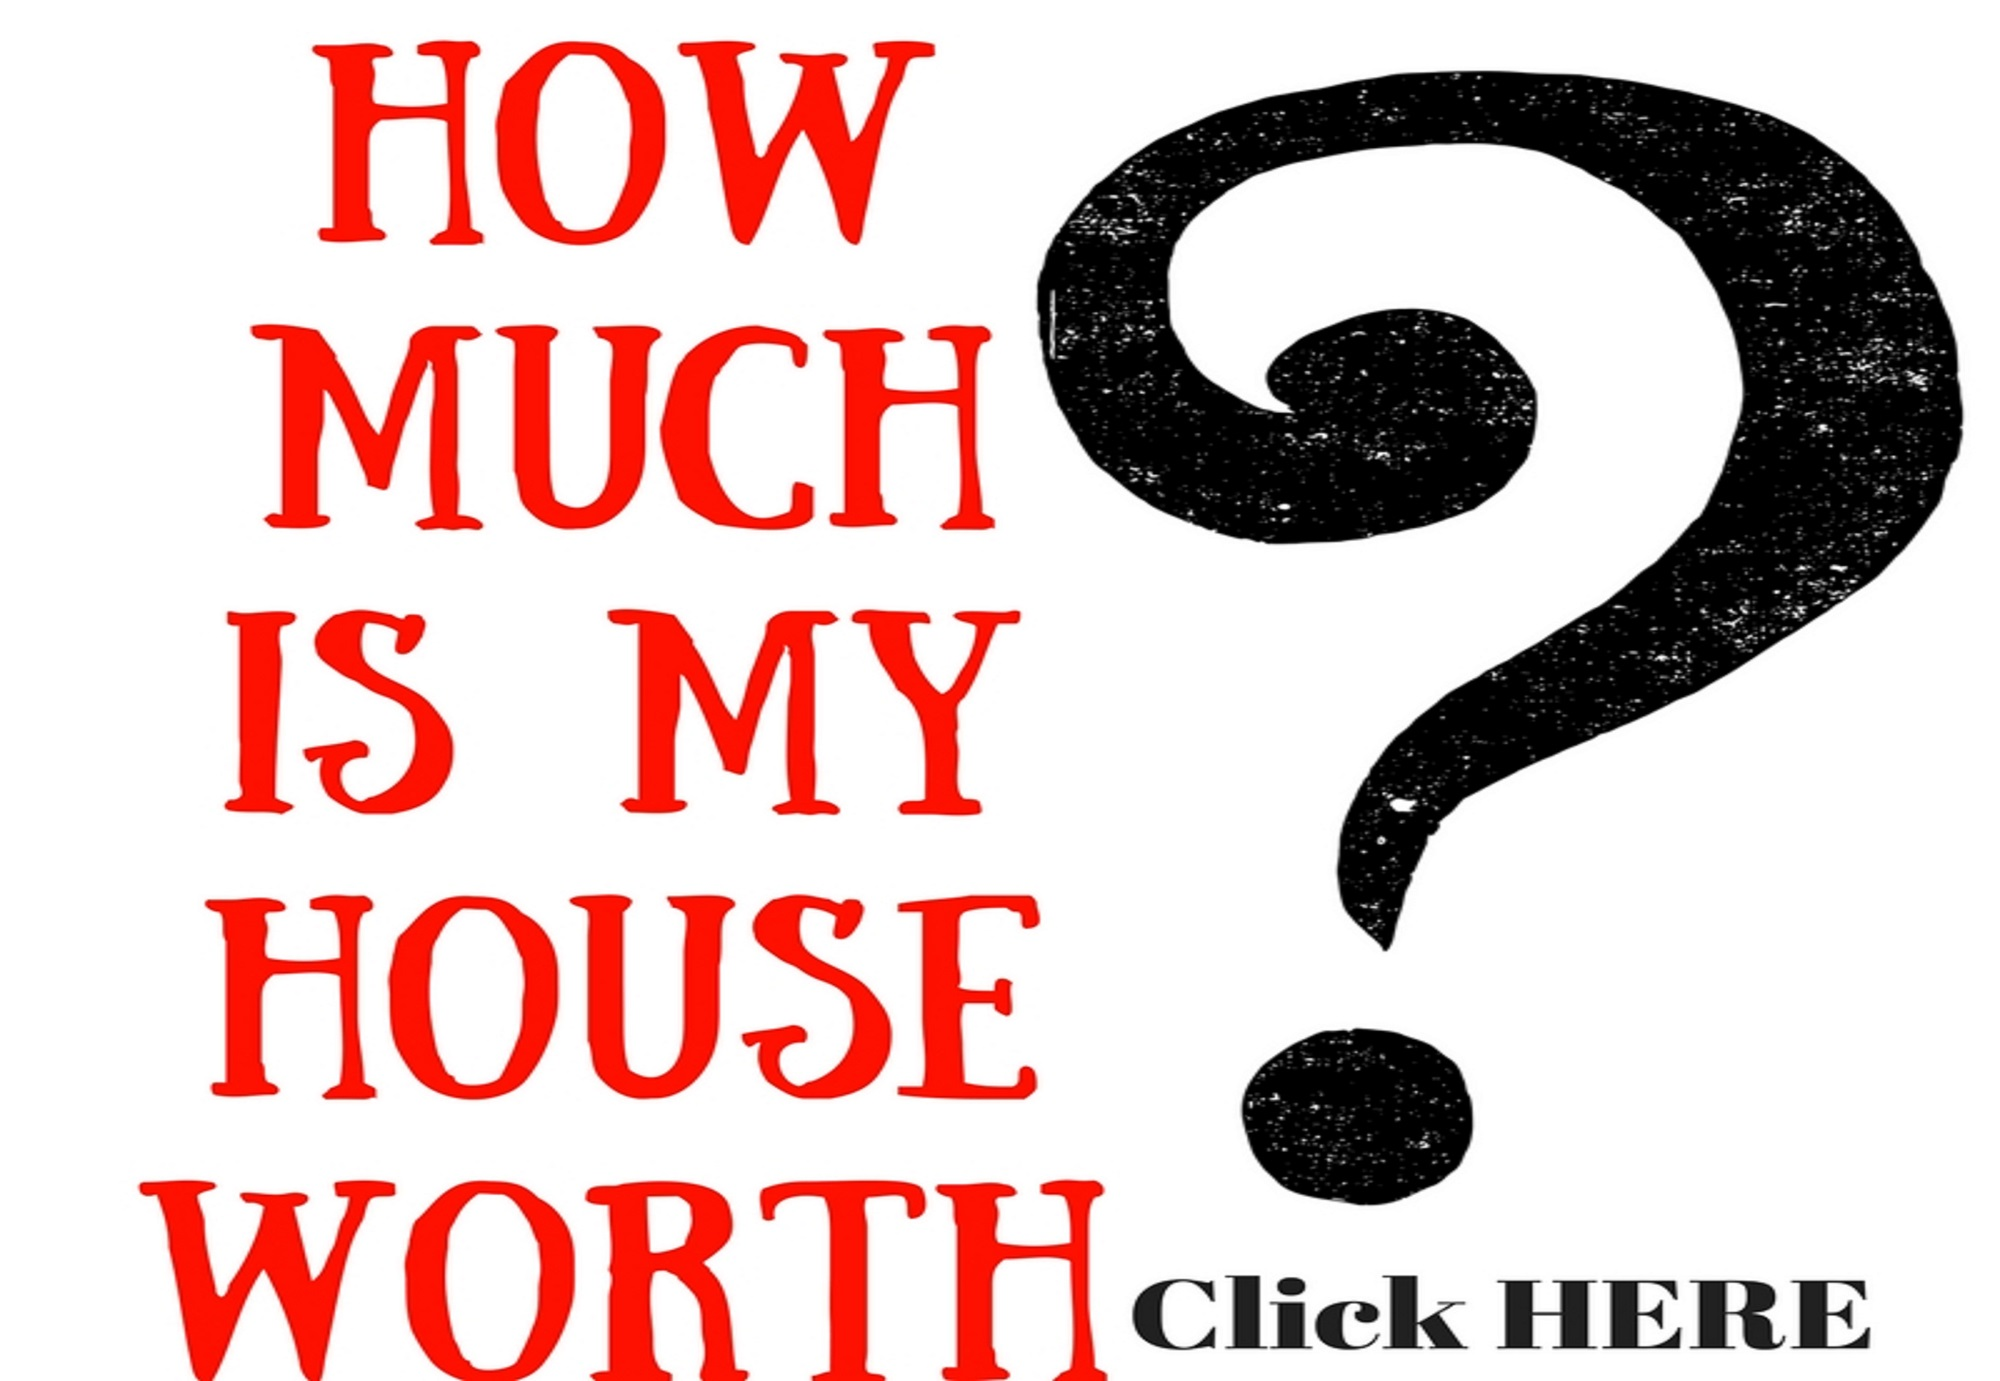 How much is my lake stevens house worth